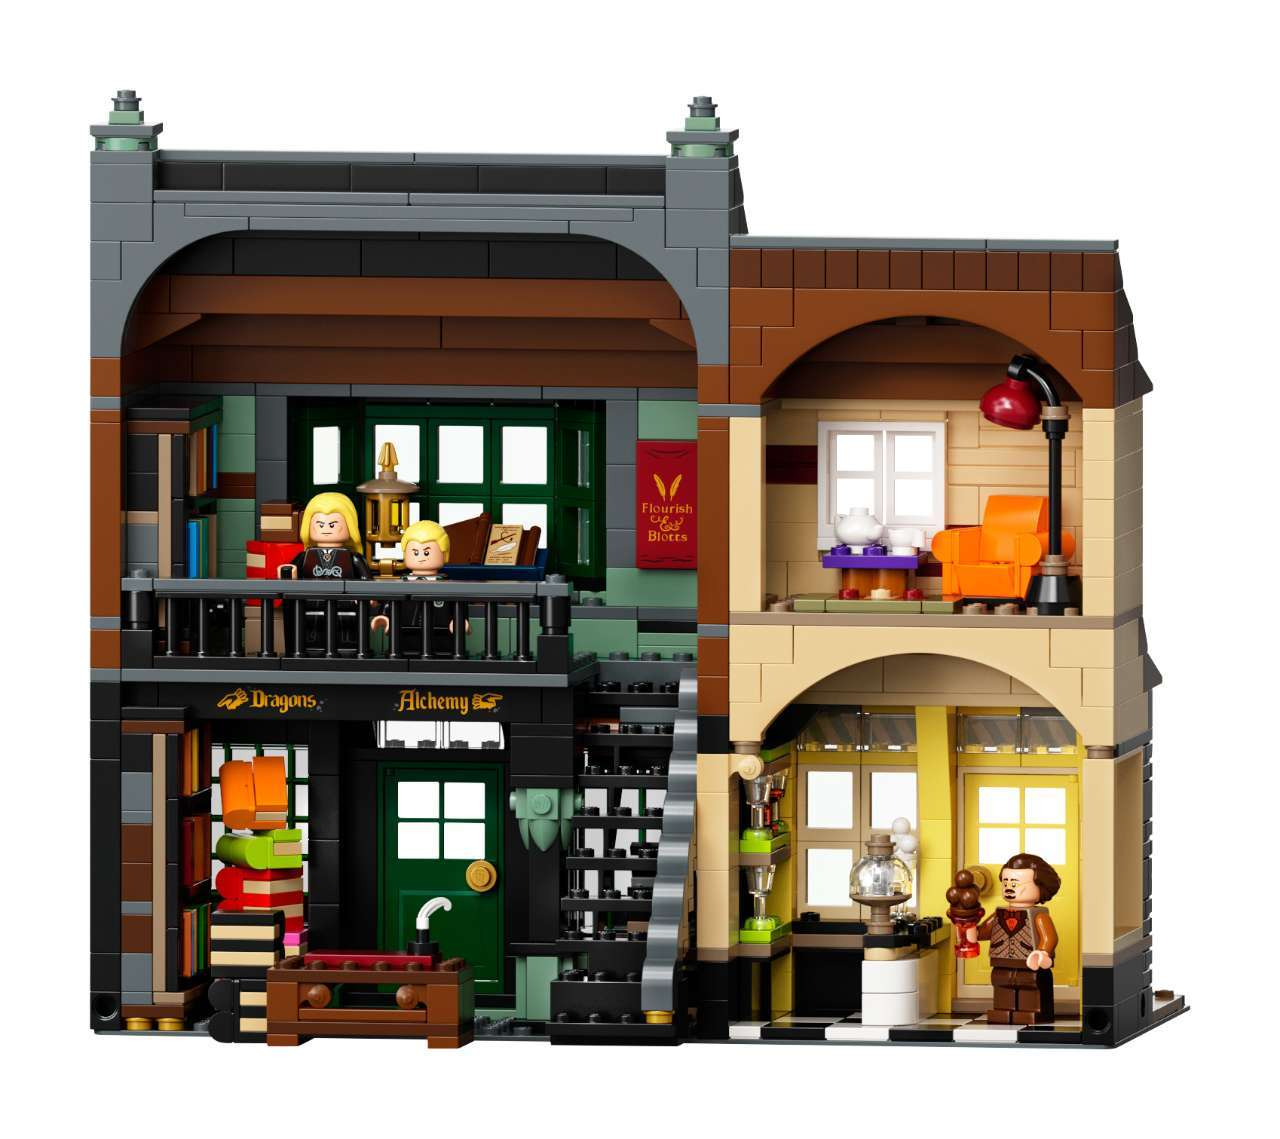 lego-harry-potter-CB-75978-Diagon-Alley-FH61K-14